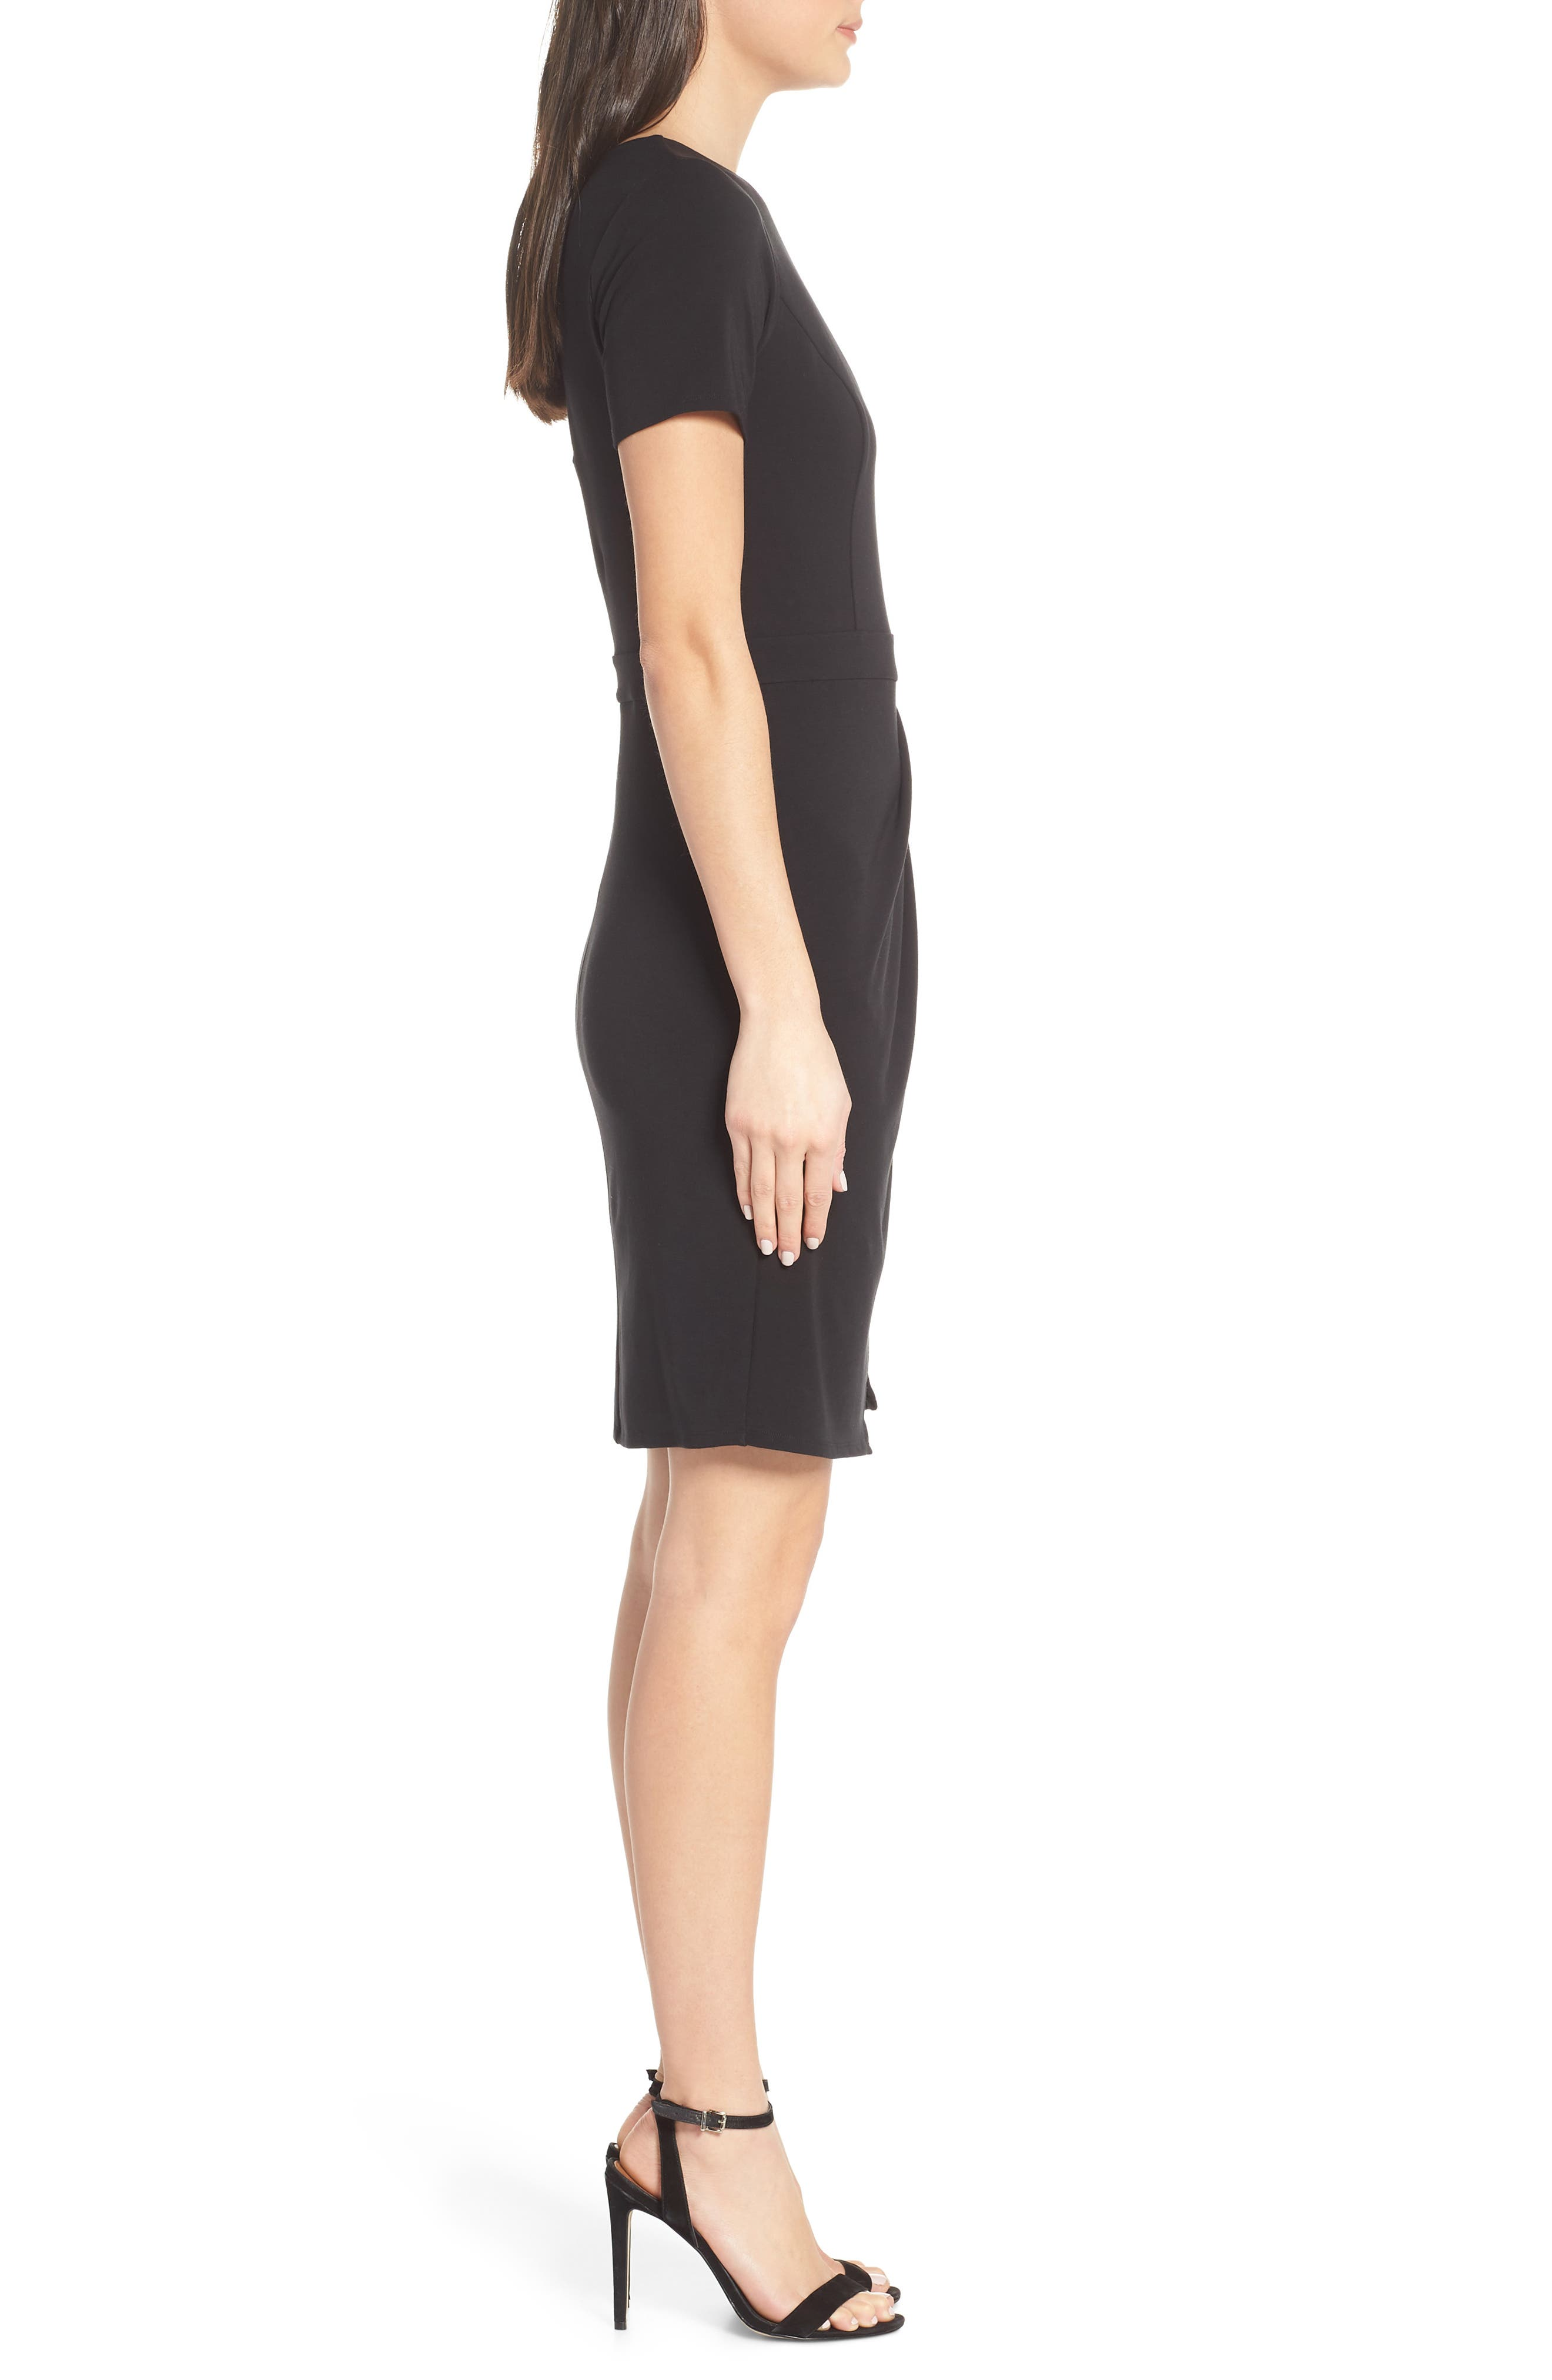 ALI & JAY, Pleated Jersey Dress, Alternate thumbnail 4, color, BLACK